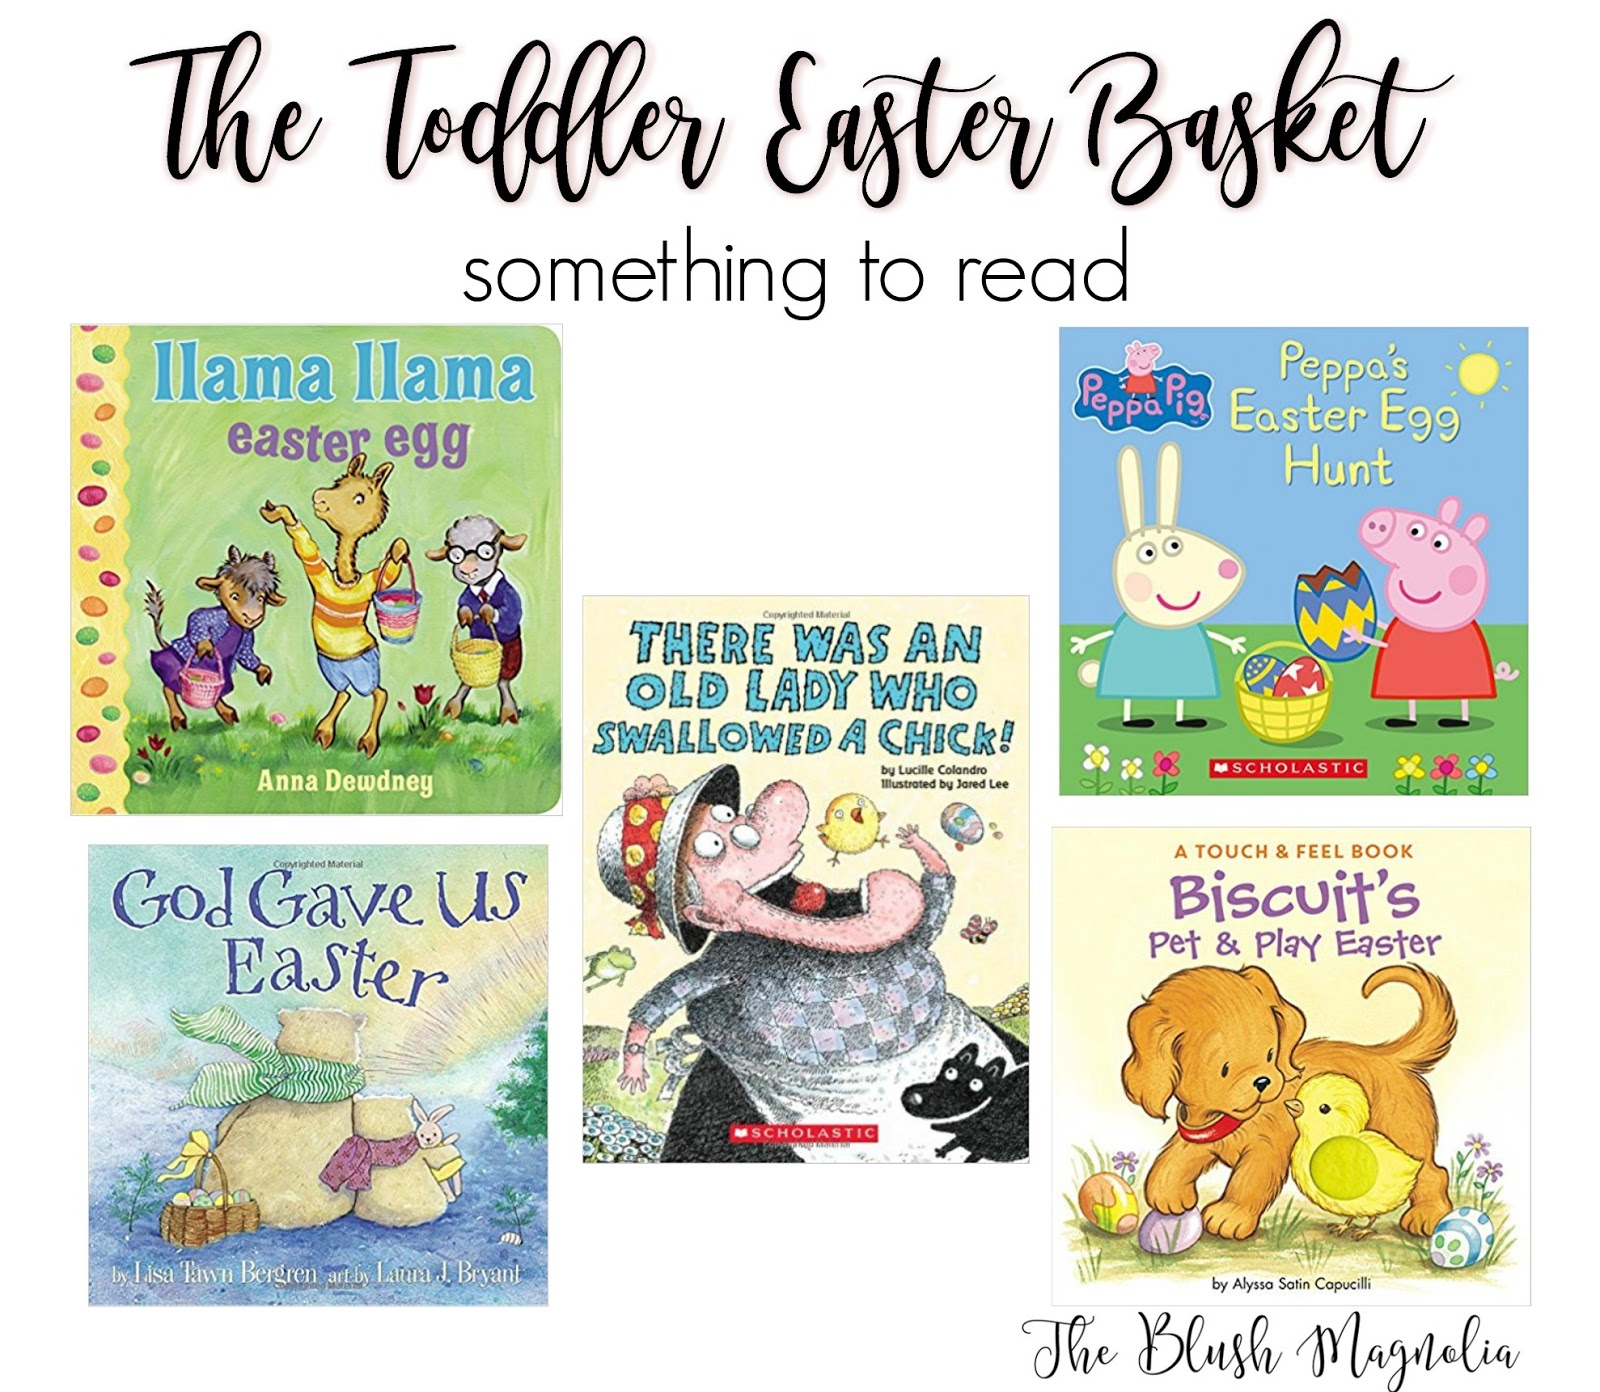 The blush magnolia a southern lifestyle blog for the toddler llama llama book peppa pig book old lady book god gave us easter biscuit easter book negle Image collections